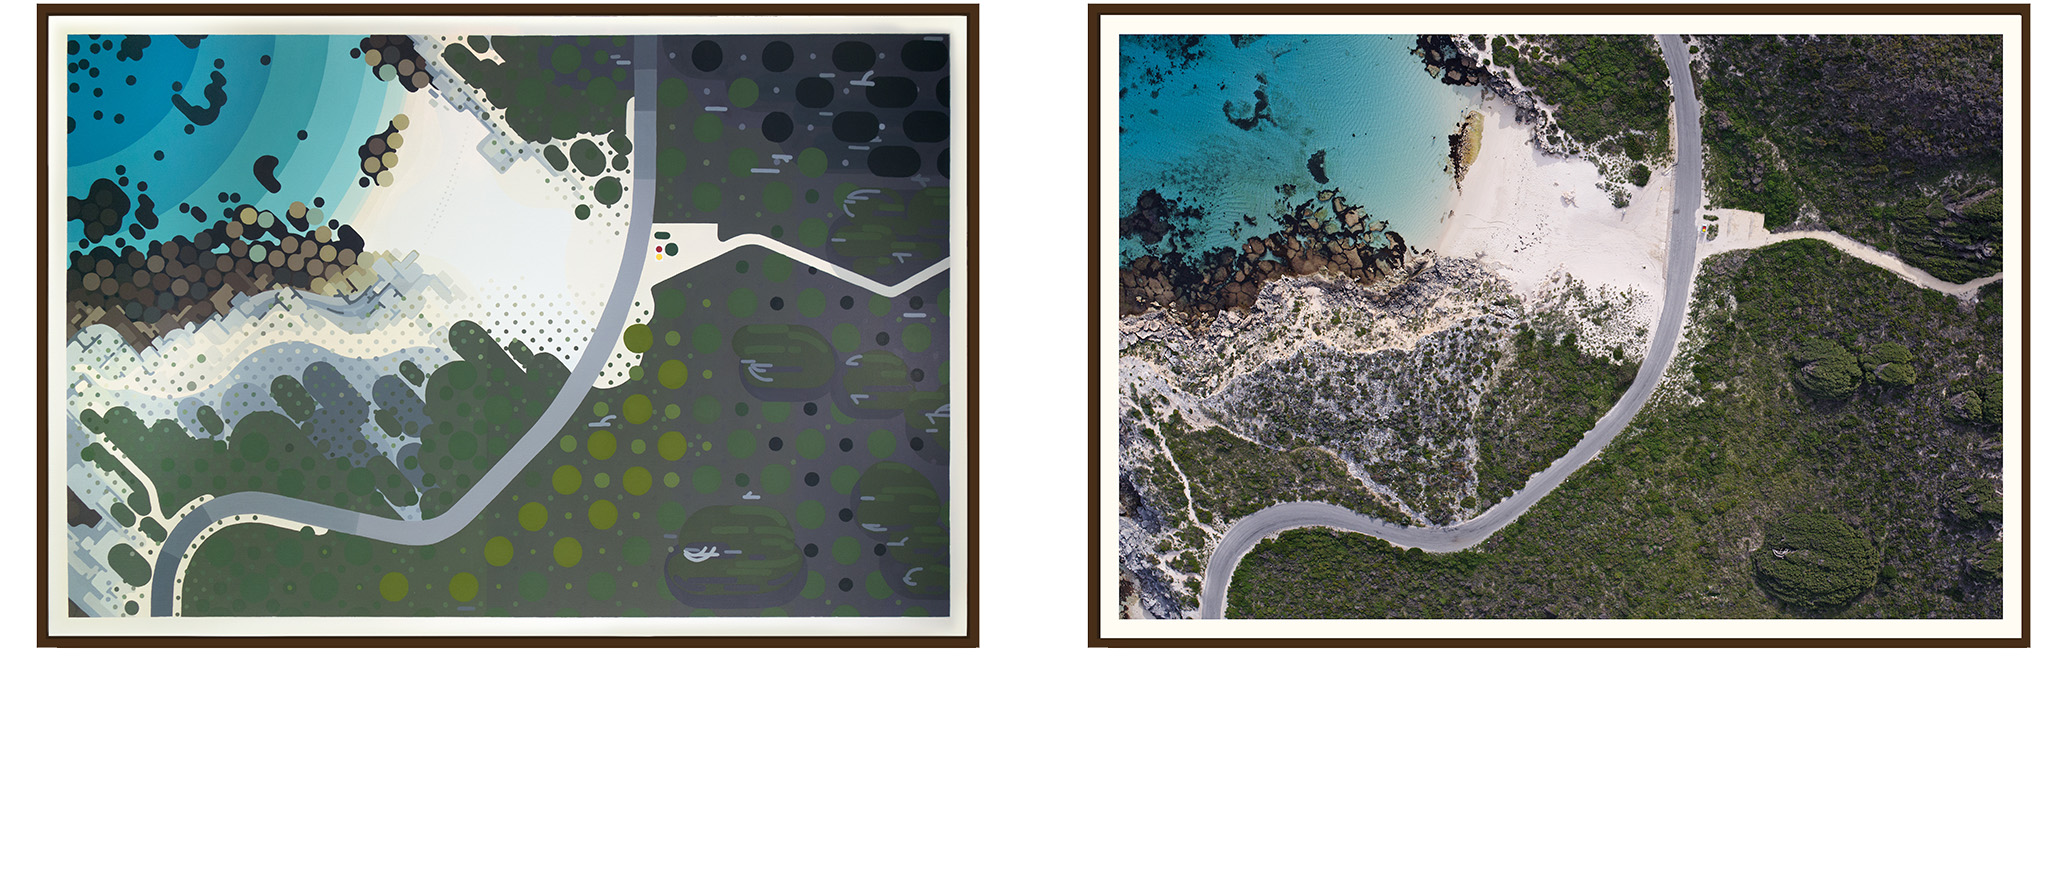 Left: 'Salmon Bay II' by Amok Island - acrylics on canvas 154cm x 104cm Right: 'Salmon Bay II' by Jarrad Seng - giclee photographic print on canvas 154cm x 104cm